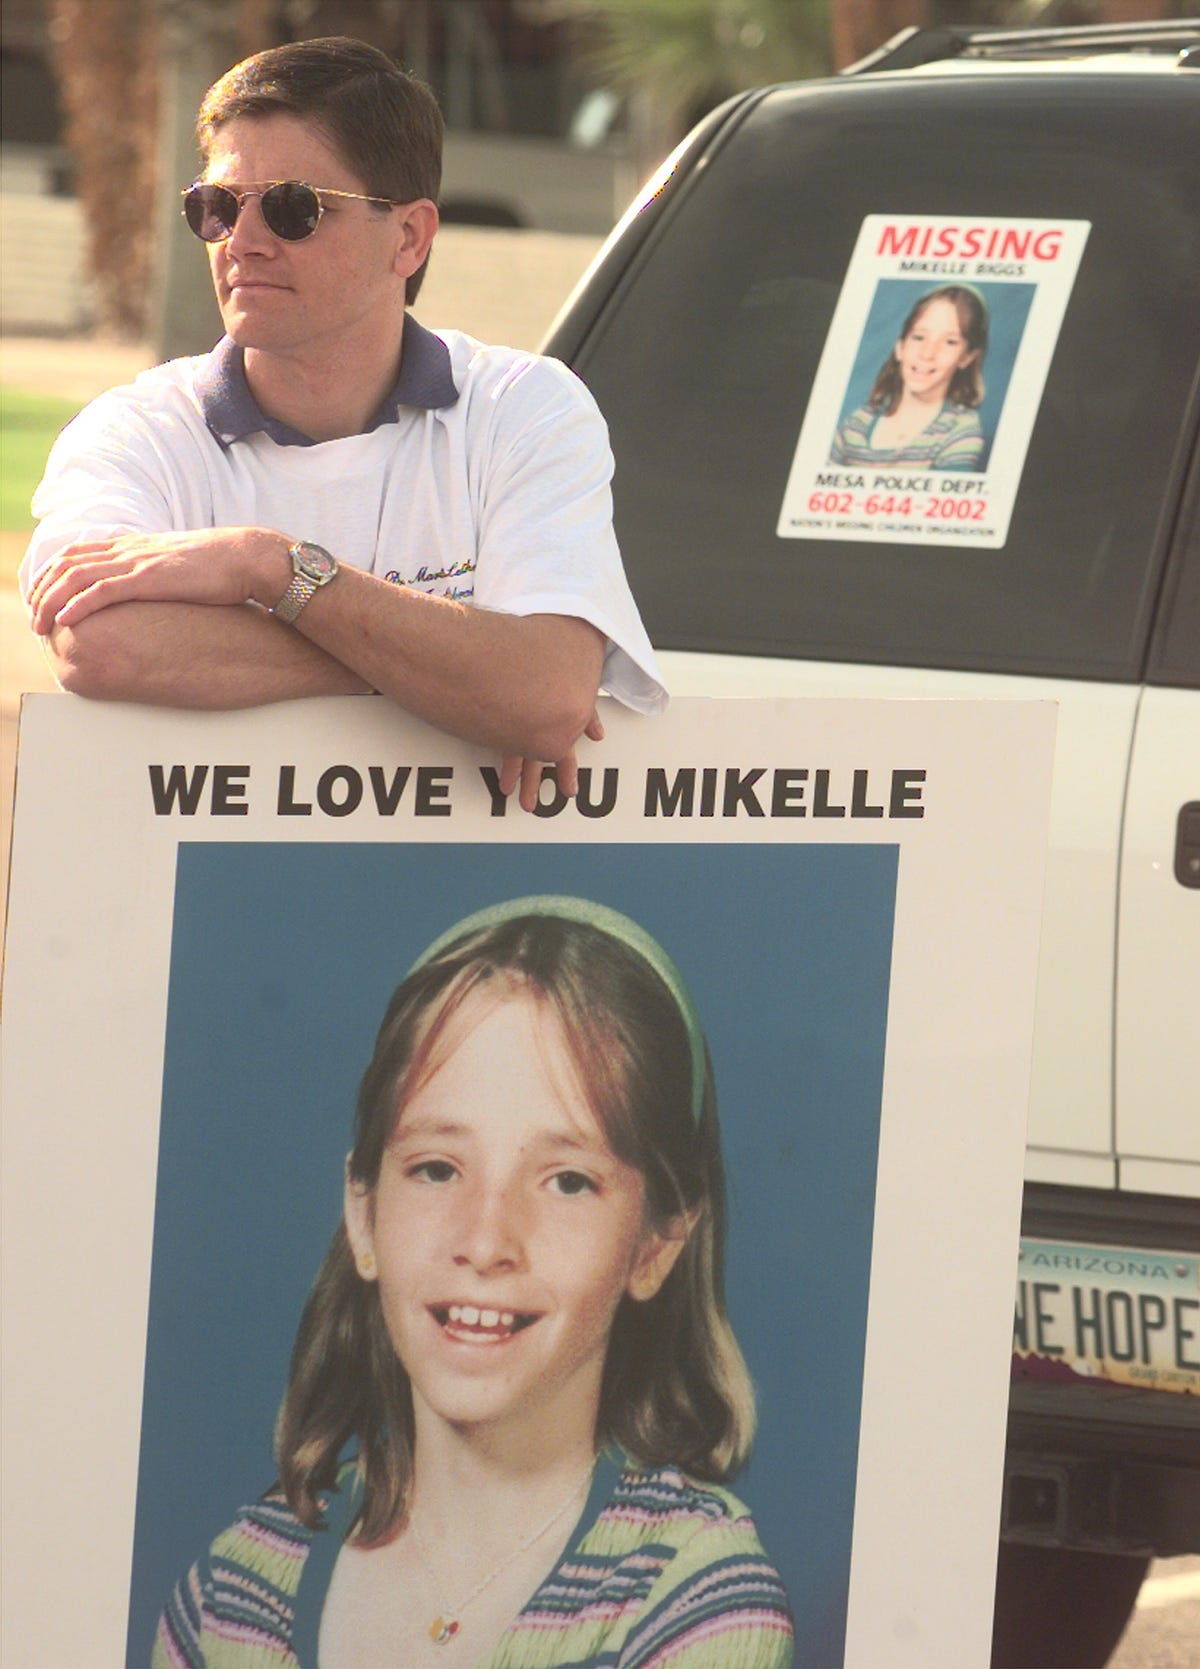 Tip in Mikelle Biggs disappearance shows up on dollar in